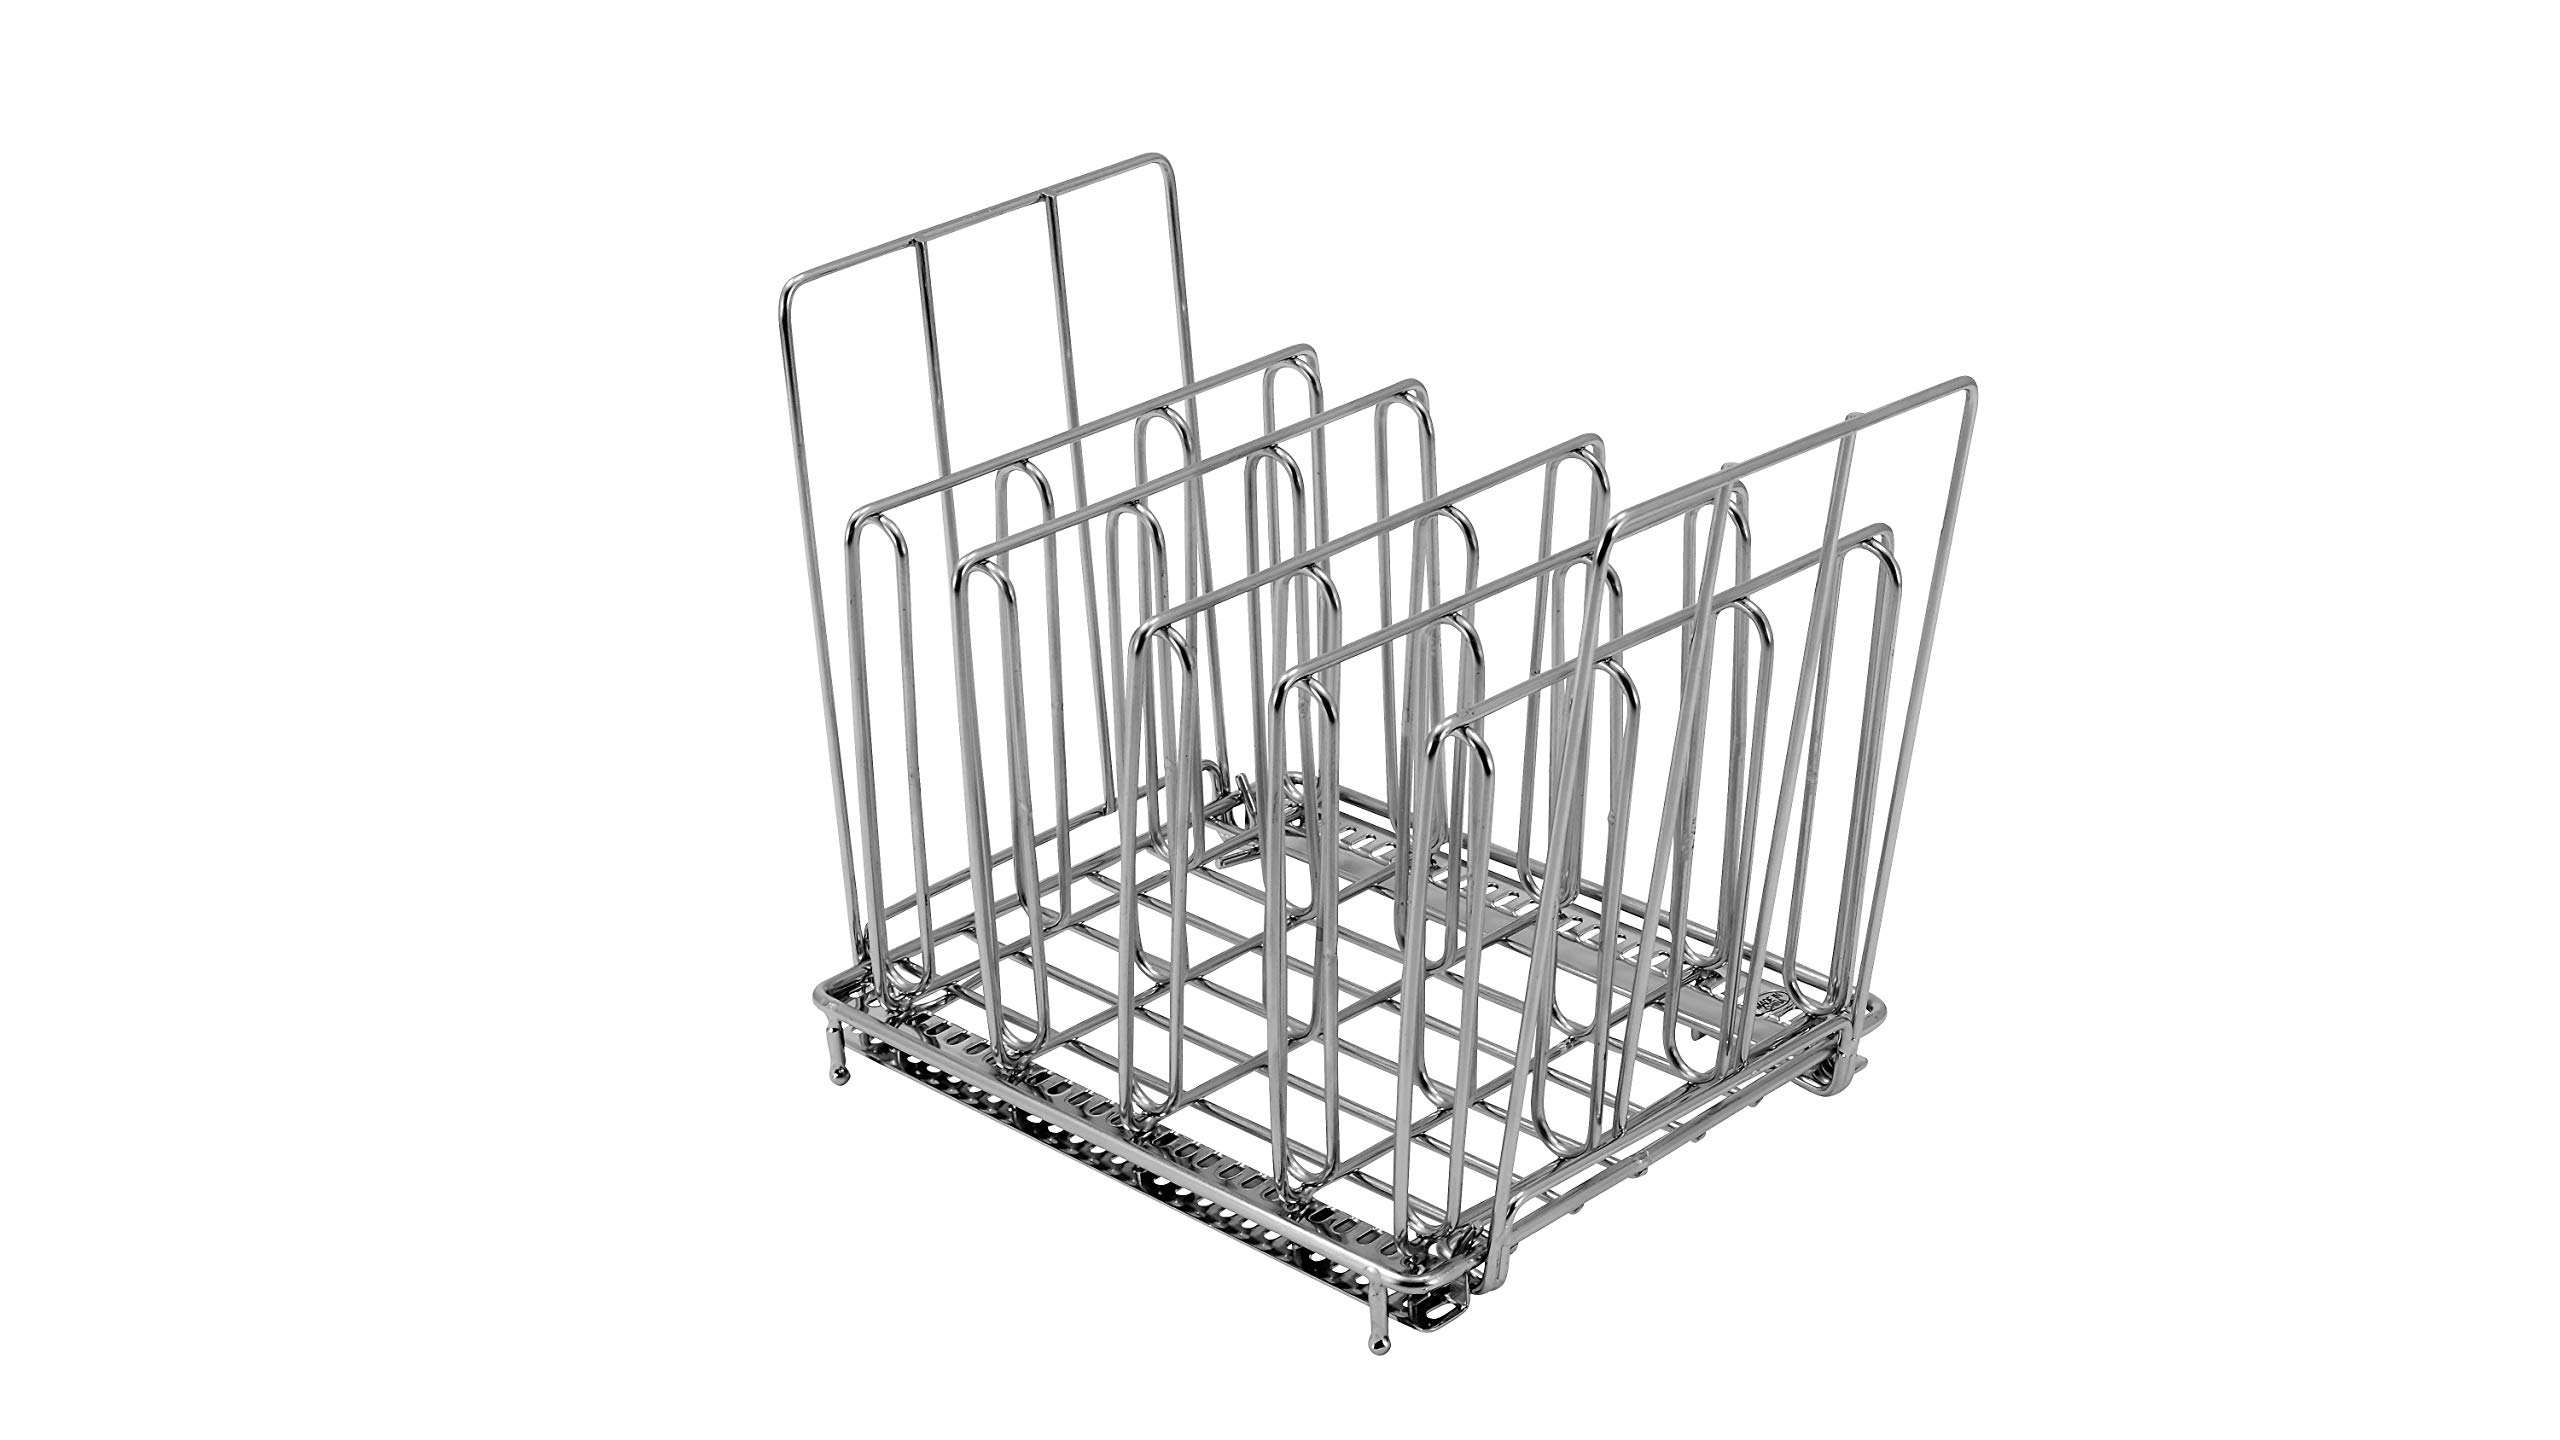 LIPAVI Sous Vide Rack-Model L10- Marine Quality 316L Stainless Steel-Square 7.8 x 6.4 Inch-Adjustable, Collapsible,Ensures even and Quick warming with Sous Vide Cooking - Fits LIPAVI C10 Container by LIPAVI